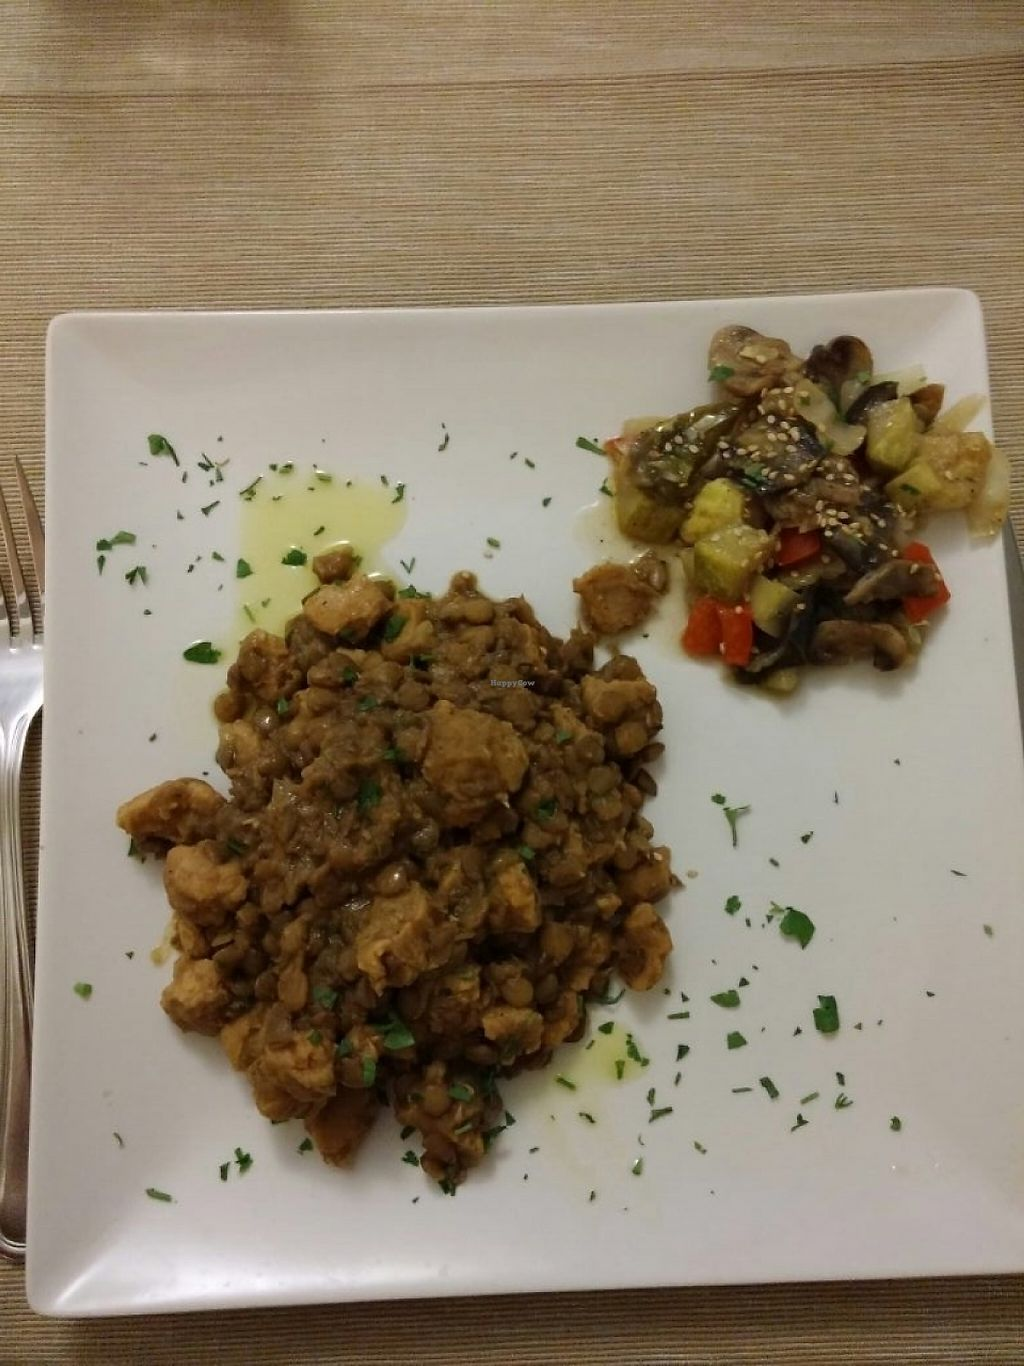 "Photo of Sanus Fuerteventura  by <a href=""/members/profile/veni_vidi_vegan"">veni_vidi_vegan</a> <br/>Vegan stew! My favourite <br/> January 11, 2016  - <a href='/contact/abuse/image/55651/207565'>Report</a>"